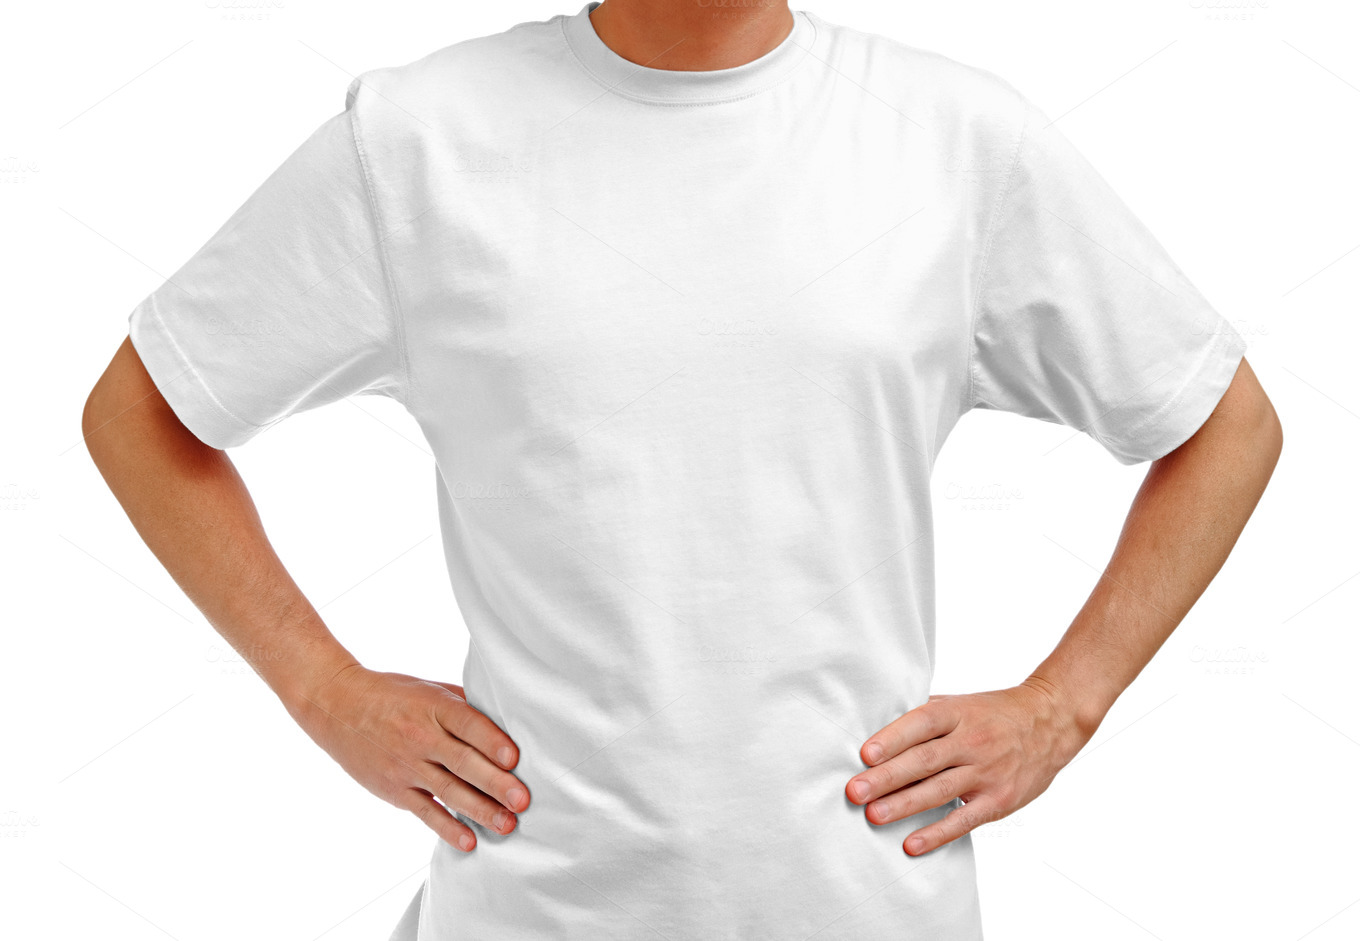 White-t-shirt-on-man